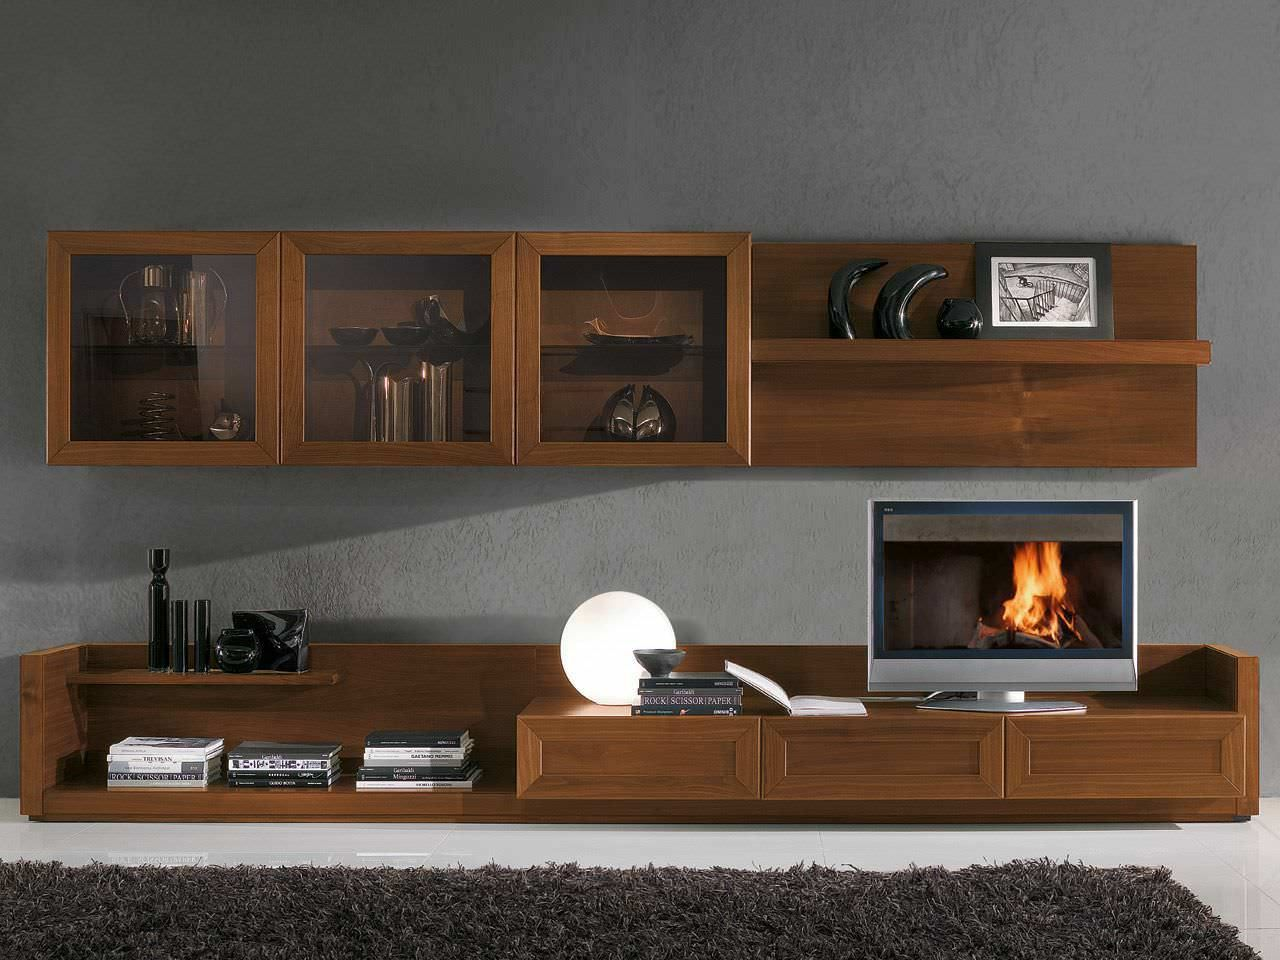 Muebles Para Tv Modernos Mueble tv moderno en madera  Ideas de inspiracin  Pinterest  Cabinet drawers Tv units and Consoles